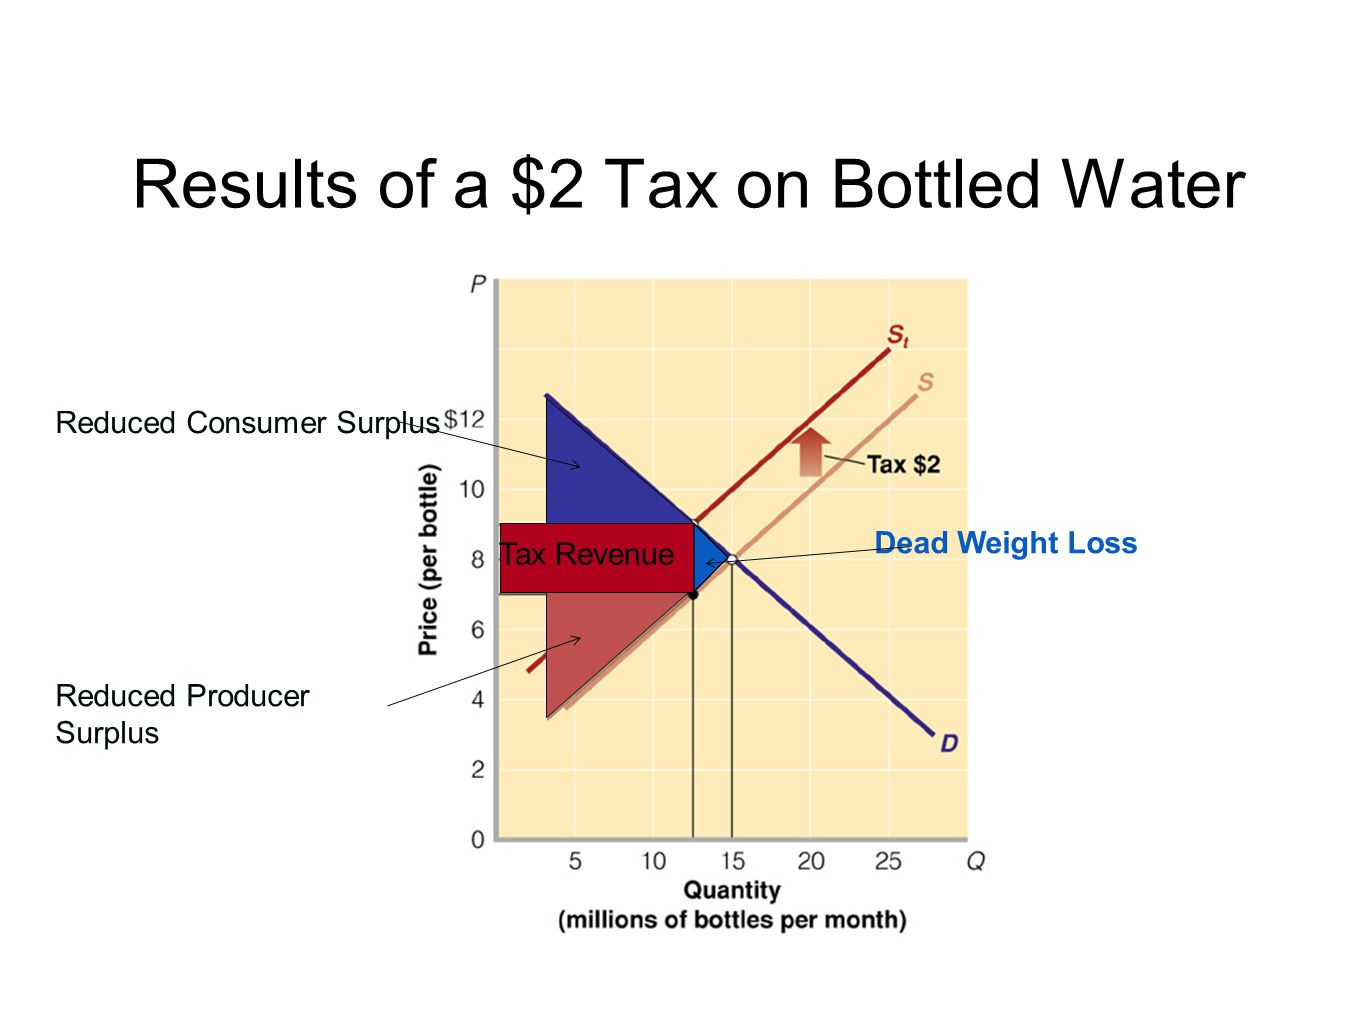 Results of a $2 Tax on Bottled Water